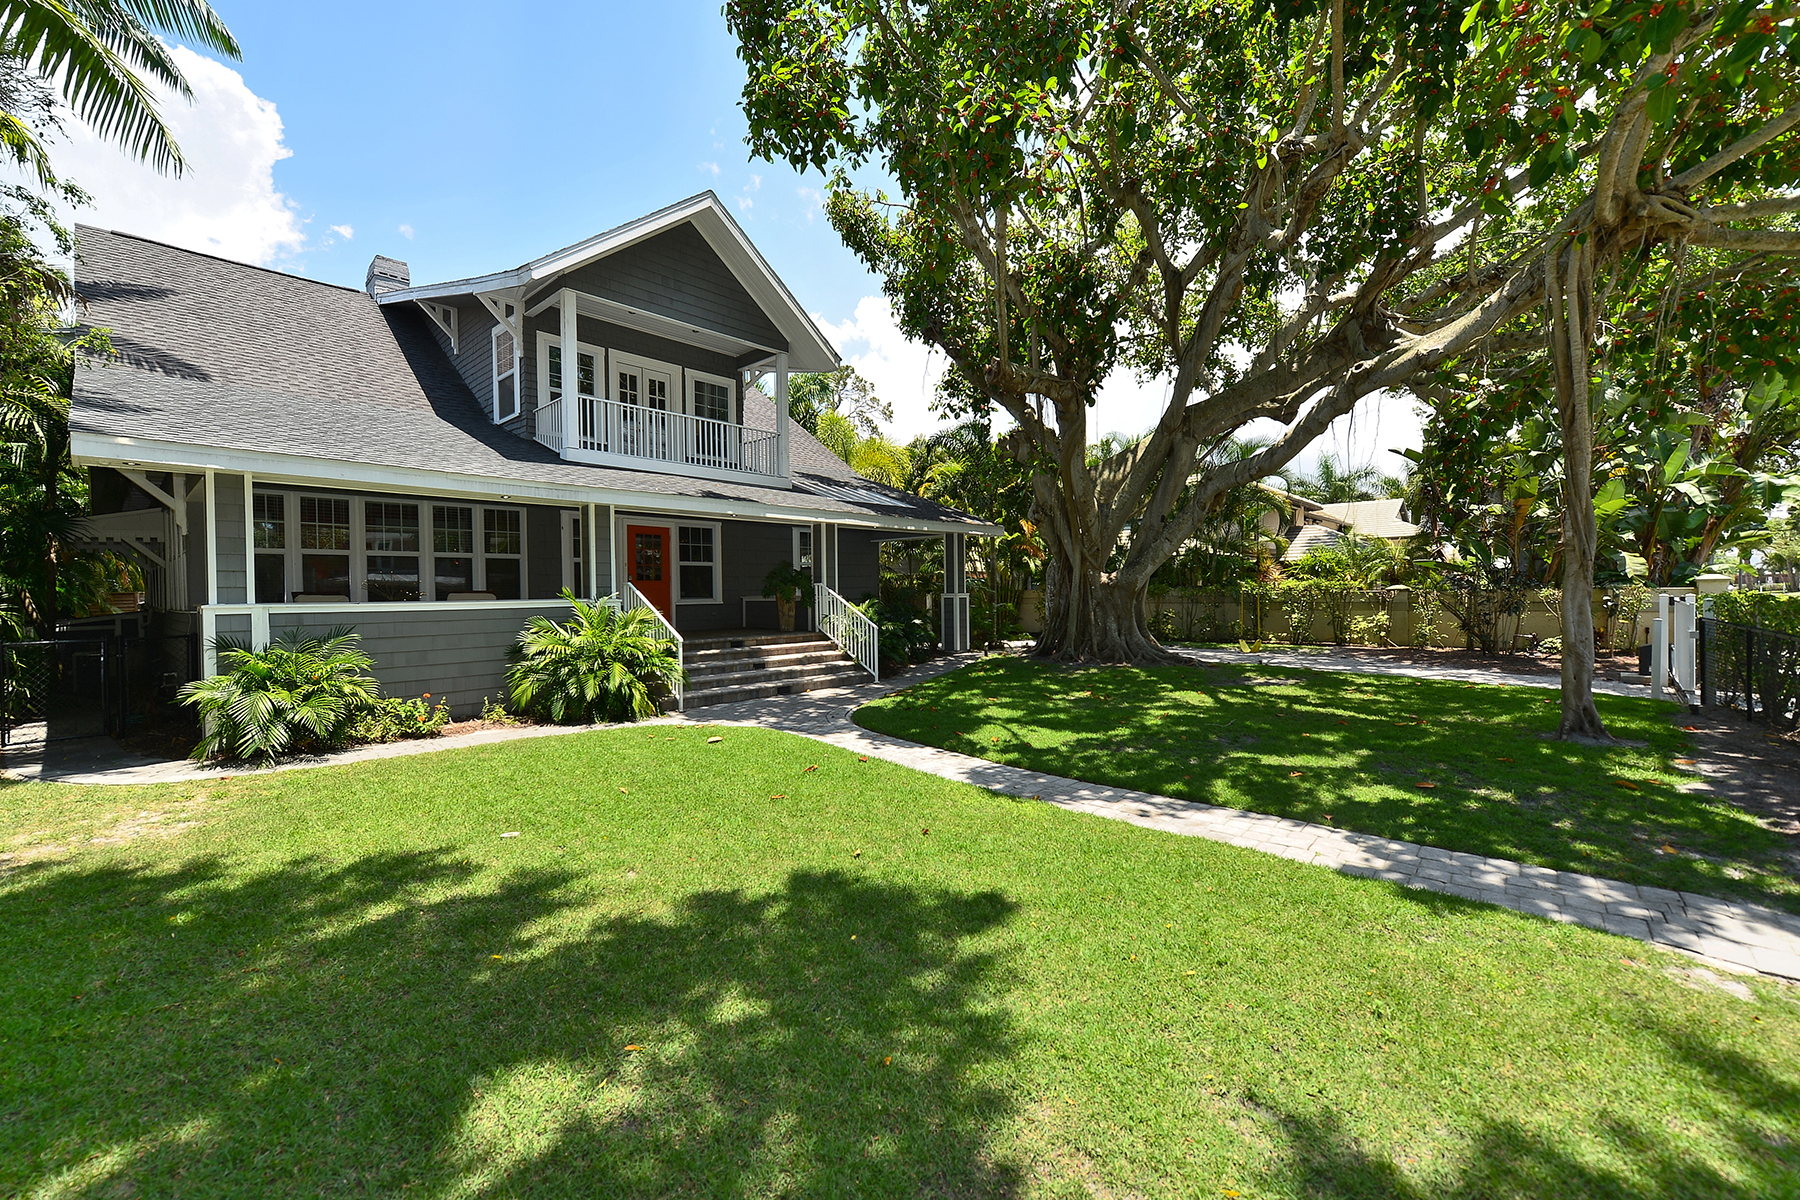 Single Family Home for Sale at LEWIS COMBS 1713 Hawthorne St Sarasota, Florida 34239 United States